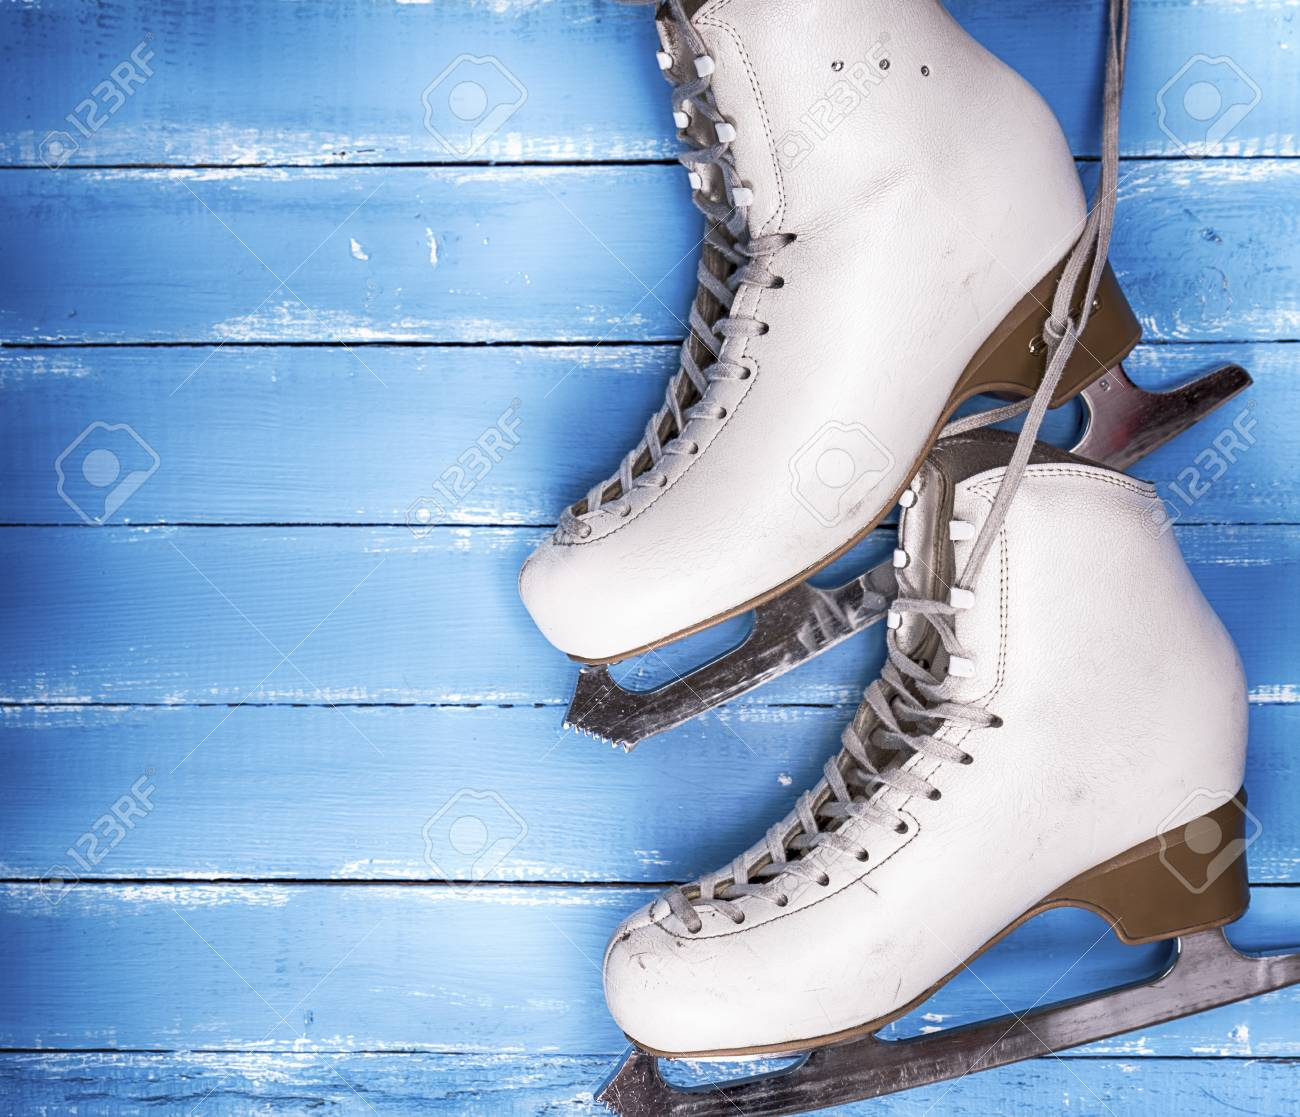 094989932ece8 a pair of worn white leather skates for figure skating on a blue..